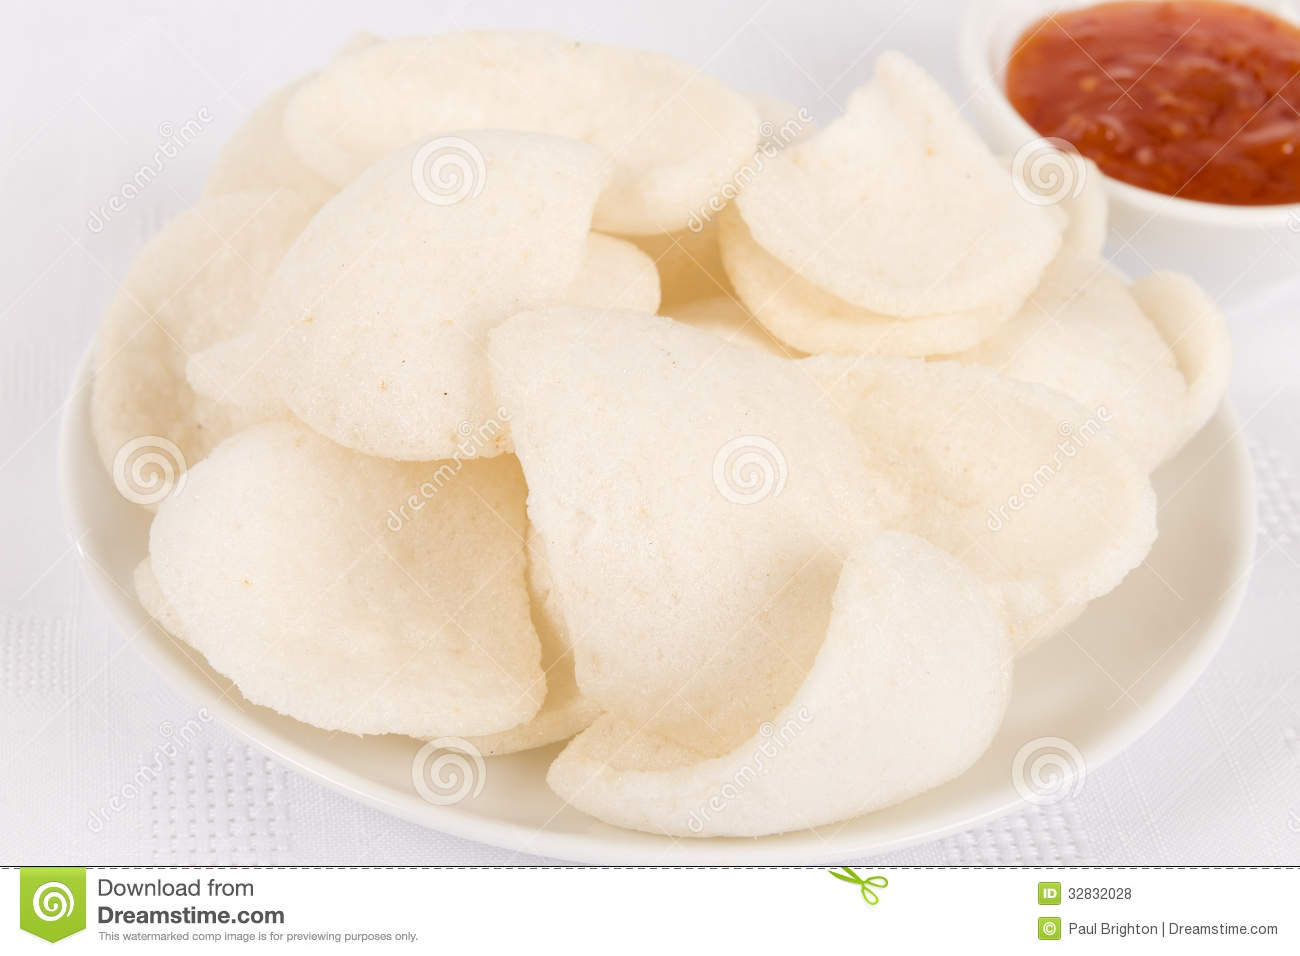 Fried Prawn Crisps And Sweet Chilli Sauce Dip On A White Background